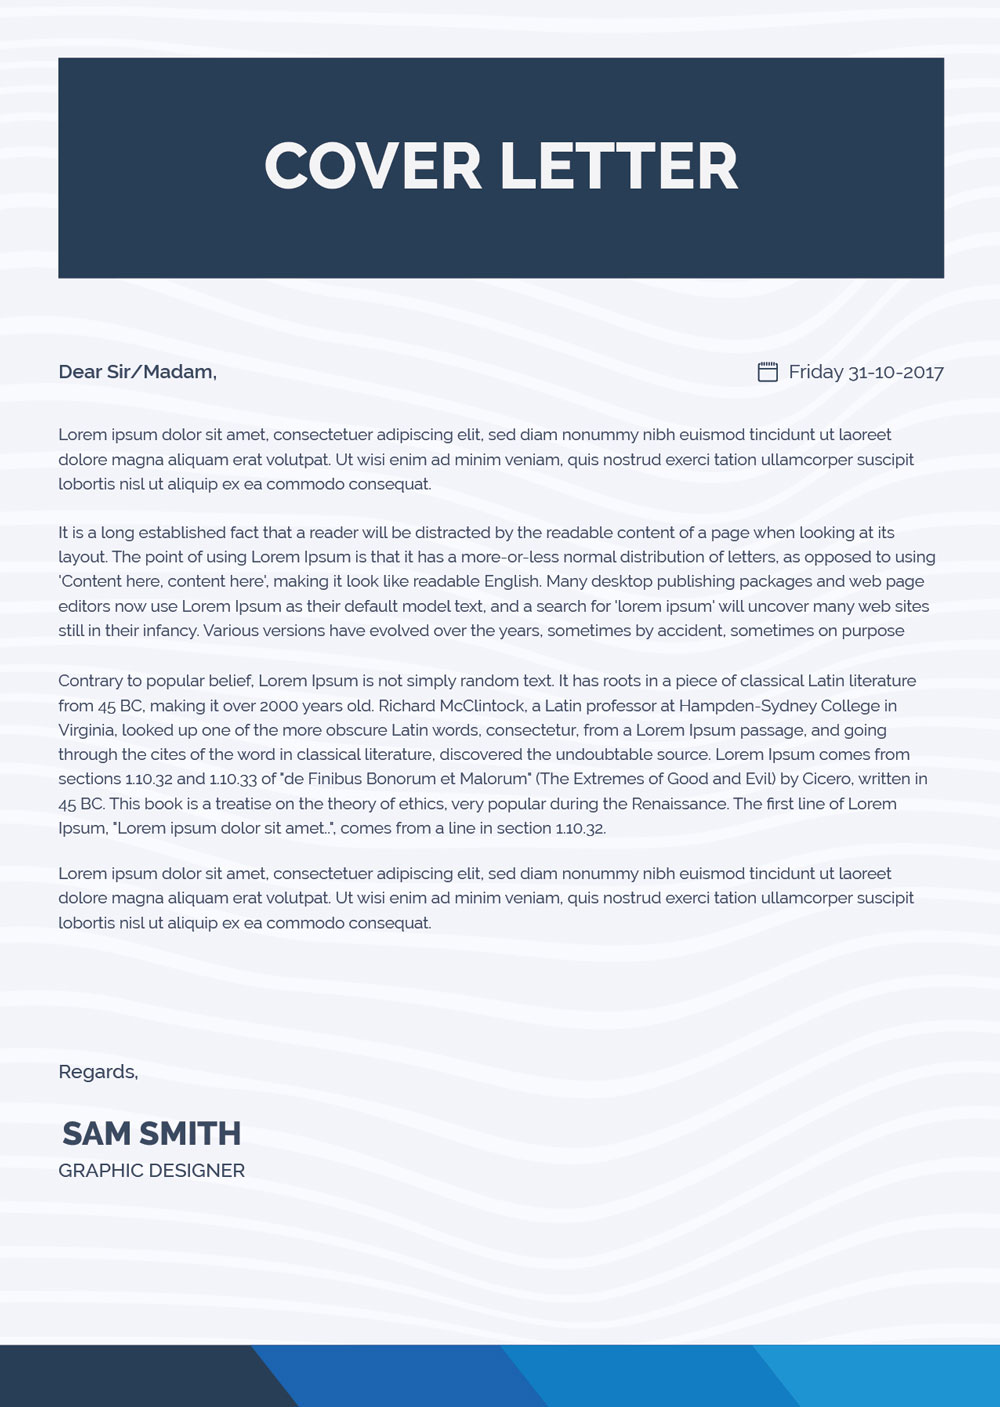 Free Ai Resume Cv Cover Letter Amp Portfolio Template For